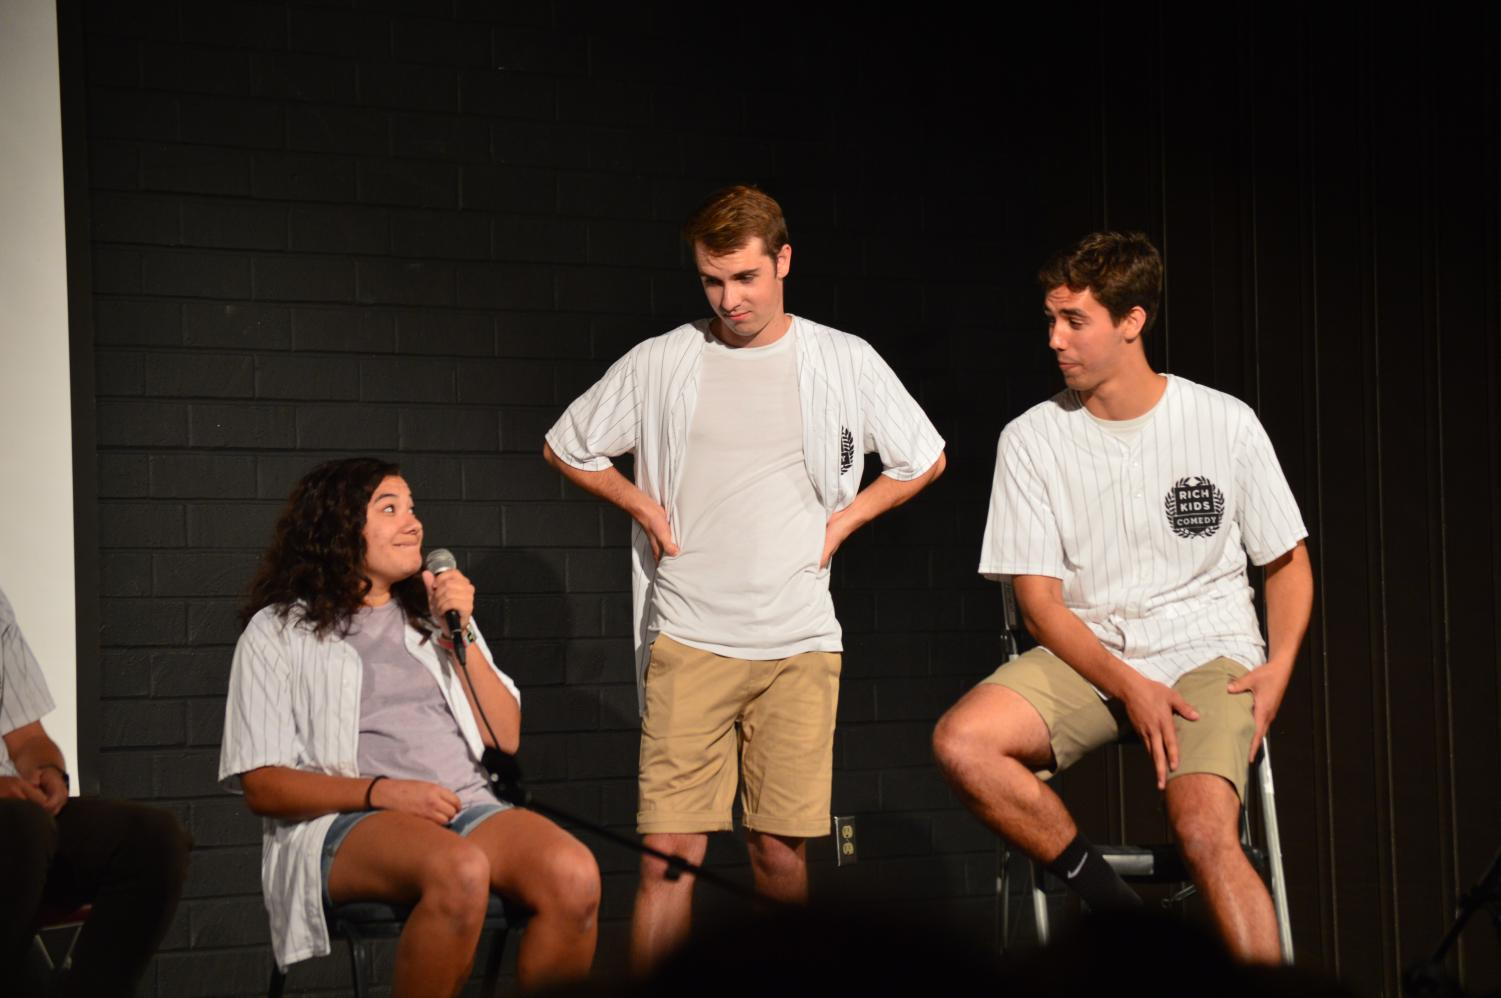 Psychology major Carissa Tereba, communications studies major Landon Hawley, and engineering physics major Josh Bernstein perform their comedy act in Mayers Auditorium on September 13, 2019.